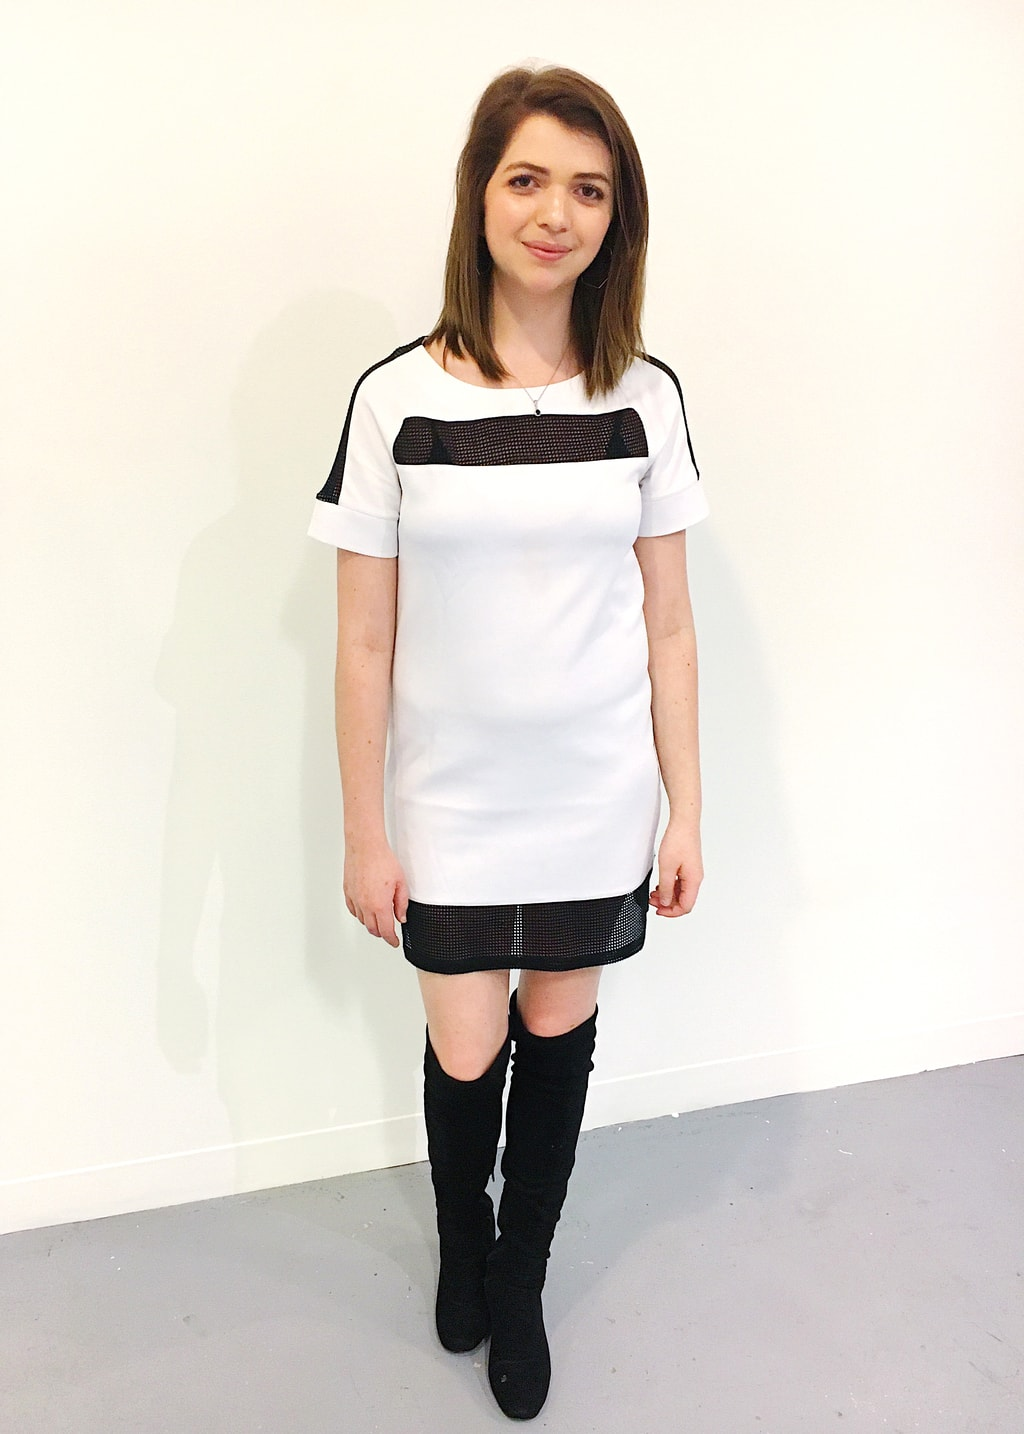 Fashion on campus at Columbus College of Art and Design: College student wearing a mod black and white shift dress and over-the-knee black boots